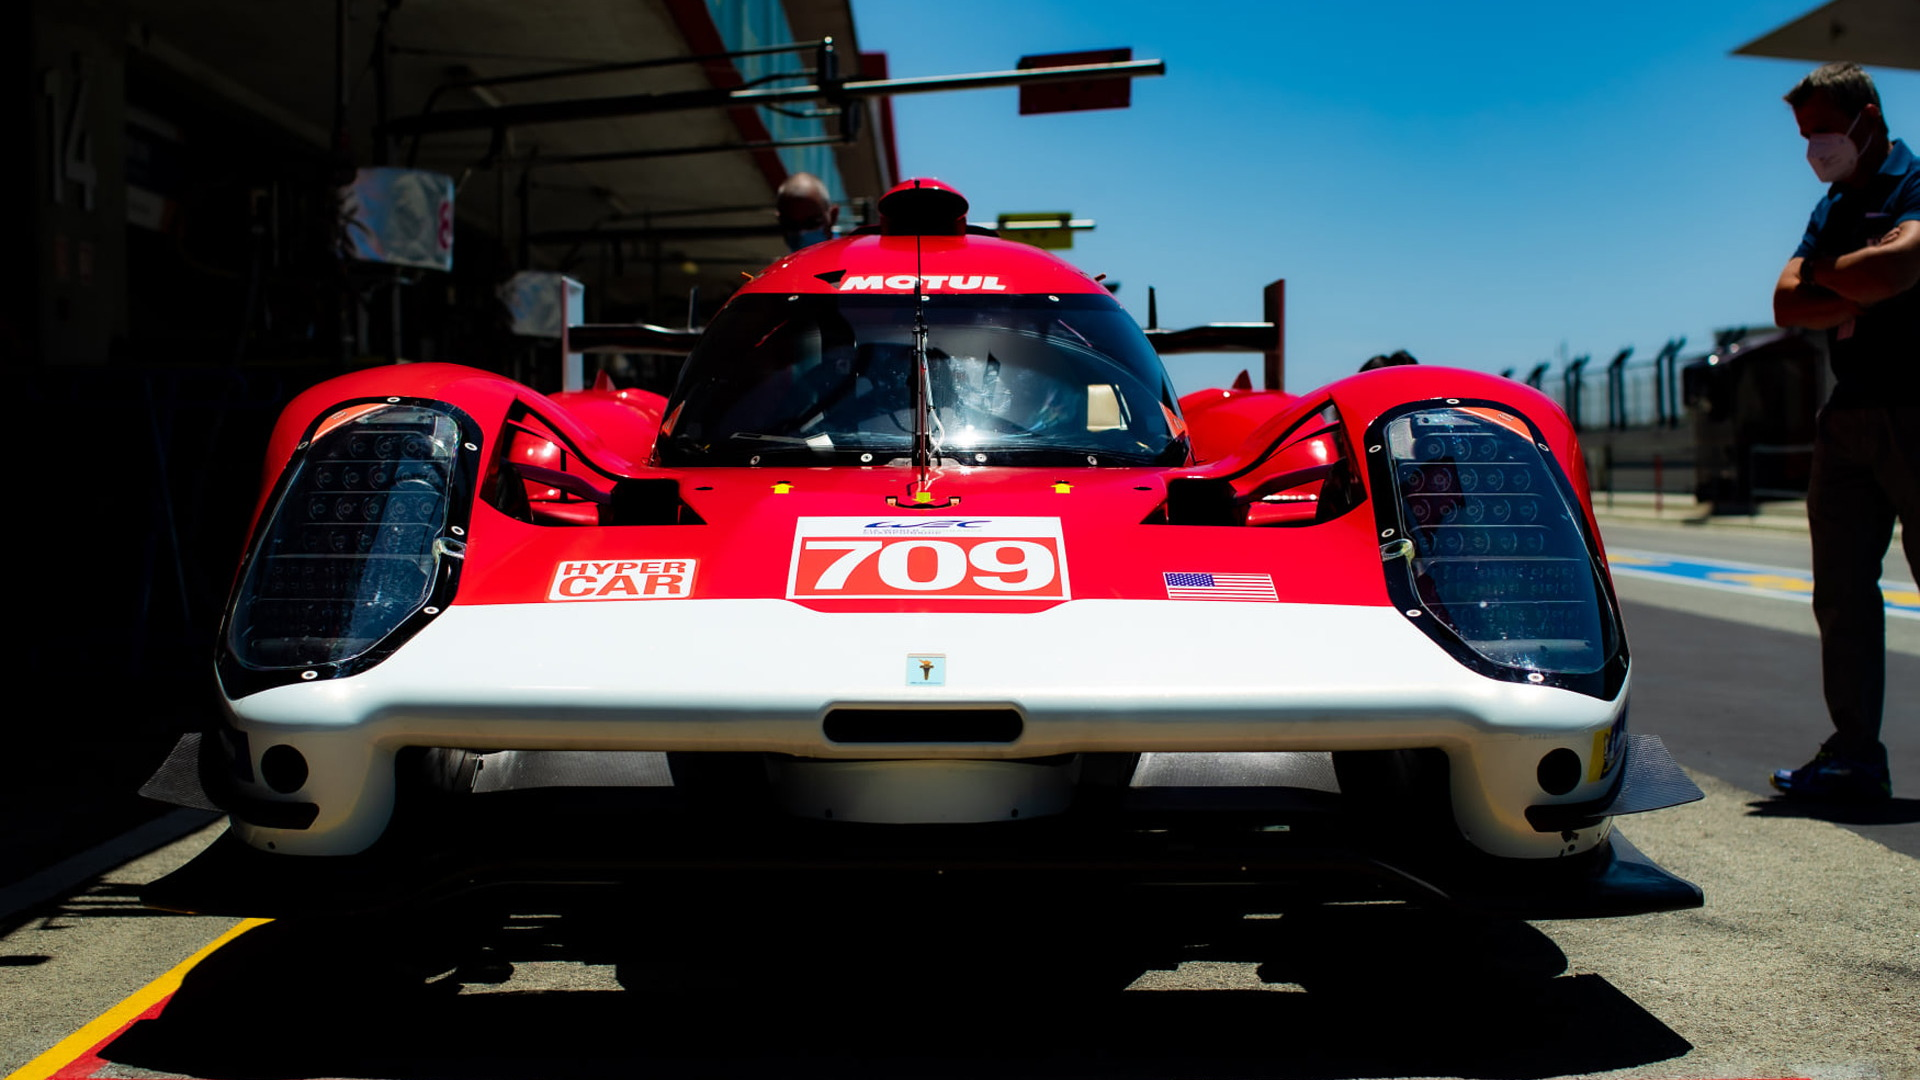 No. 709 Glickenhaus 007 LMH at the 2021 8 Hours of Portimao - Photo credit: FIA WEC